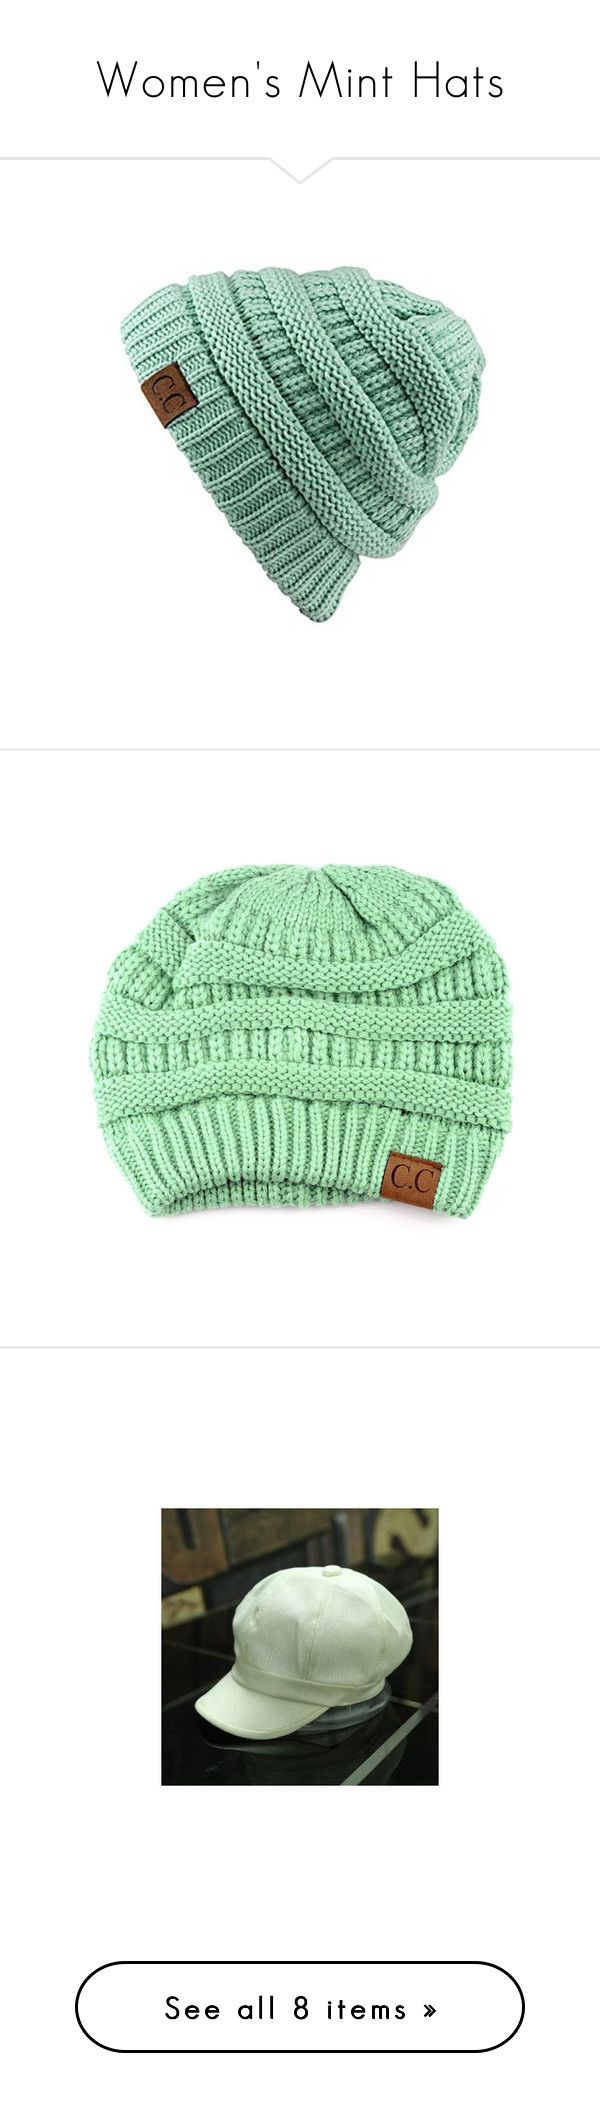 """""""Women's Mint Hats"""" by eternalfeatherfilm on Polyvore featuring tops, green, unisex tops, short tops, slouchy tops, green top, accessories, hats, women and apple cap"""